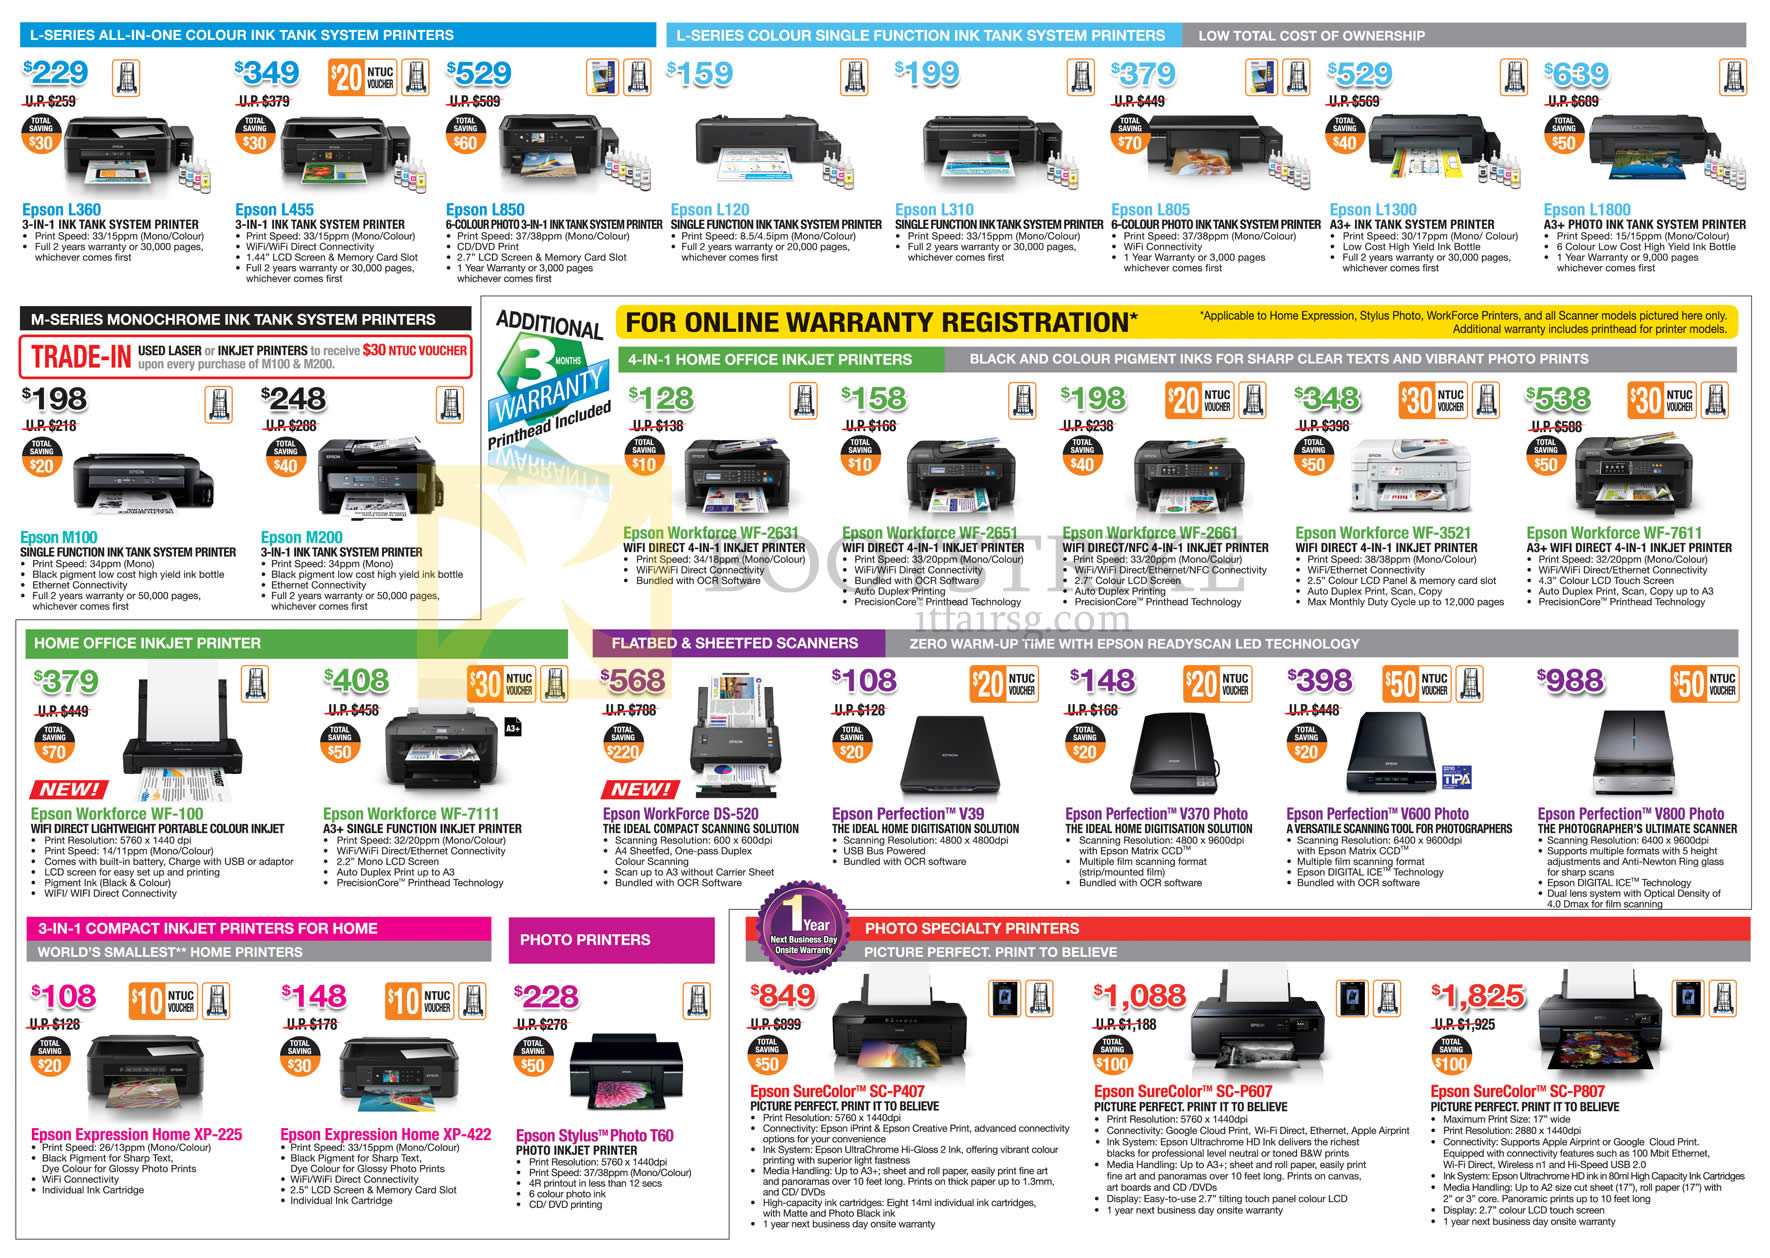 COMEX 2016 price list image brochure of Epson Printers, Scanners, L Series, 4 In 1 Home Office, Home Office, Photo Specialty, 3 In 1 Compact